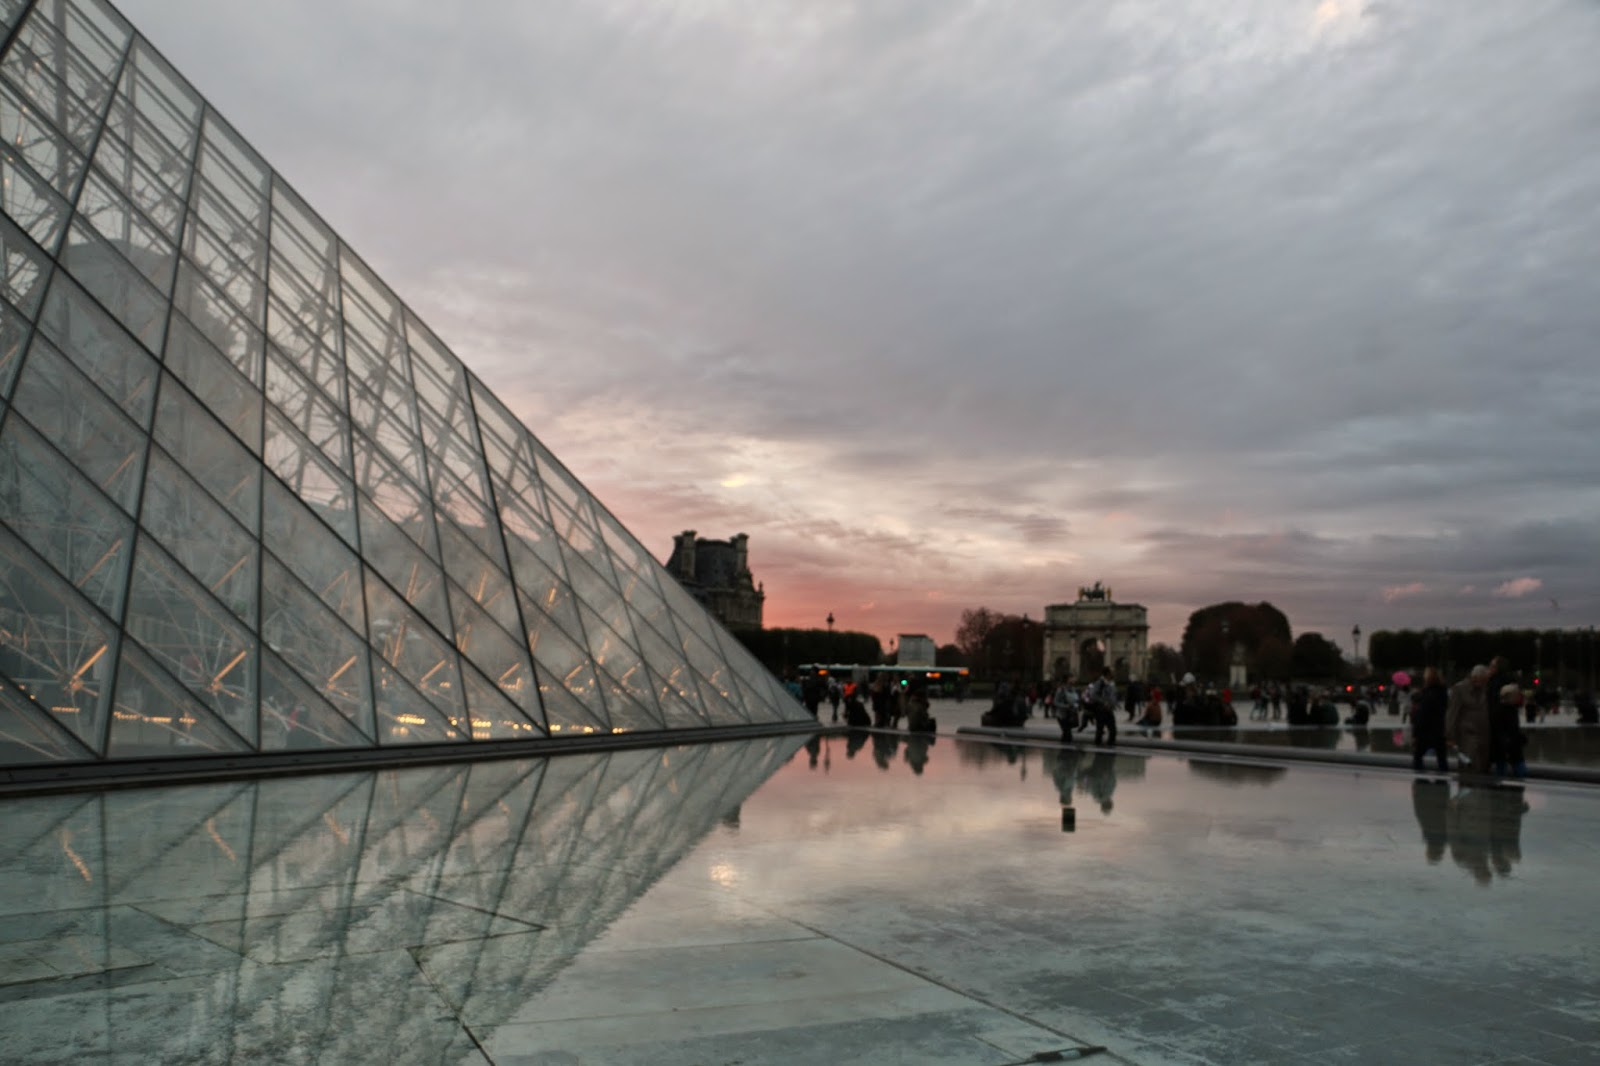 Louvre-Paris- 15 OCT 2014-Photo: Shahrzad Ghaffari